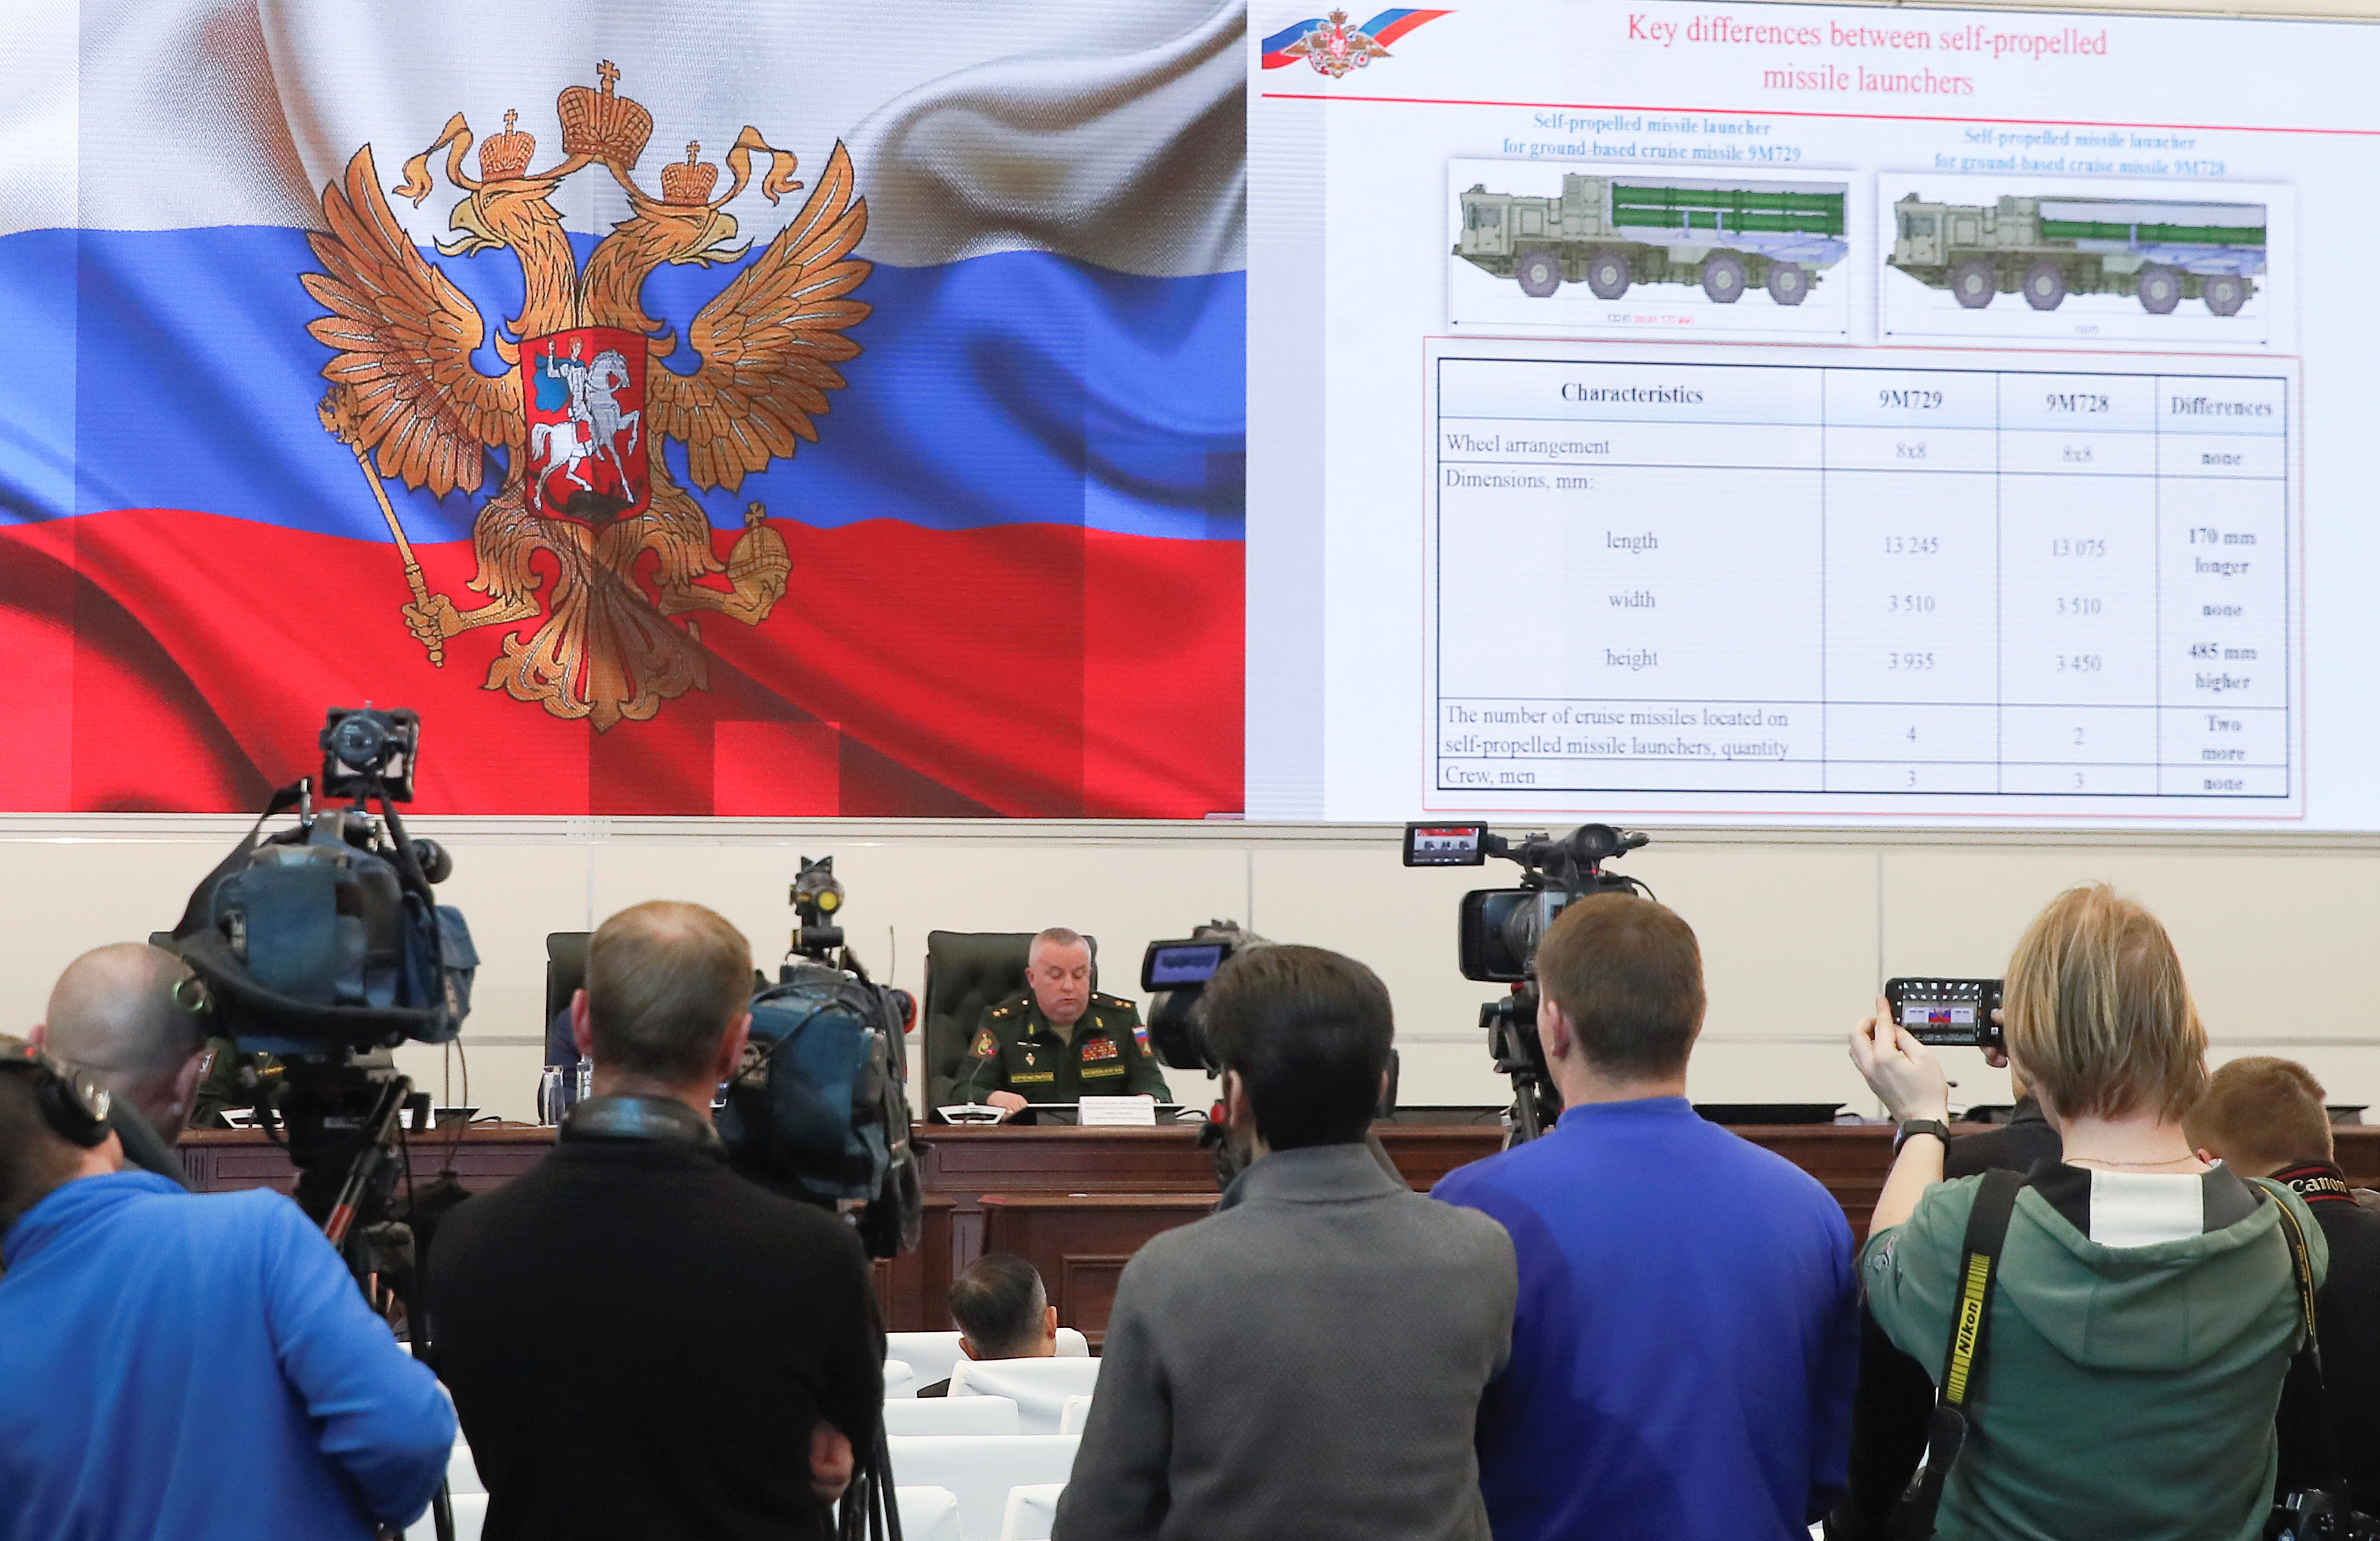 Participants attend a news briefing, organized by Russian defence and foreign ministries' officials and dedicated to SSC-8/9M729 cruise missile system, at Patriot Expocentre near Moscow, Russia January 23, 2019. REUTERS/Maxim Shemetov